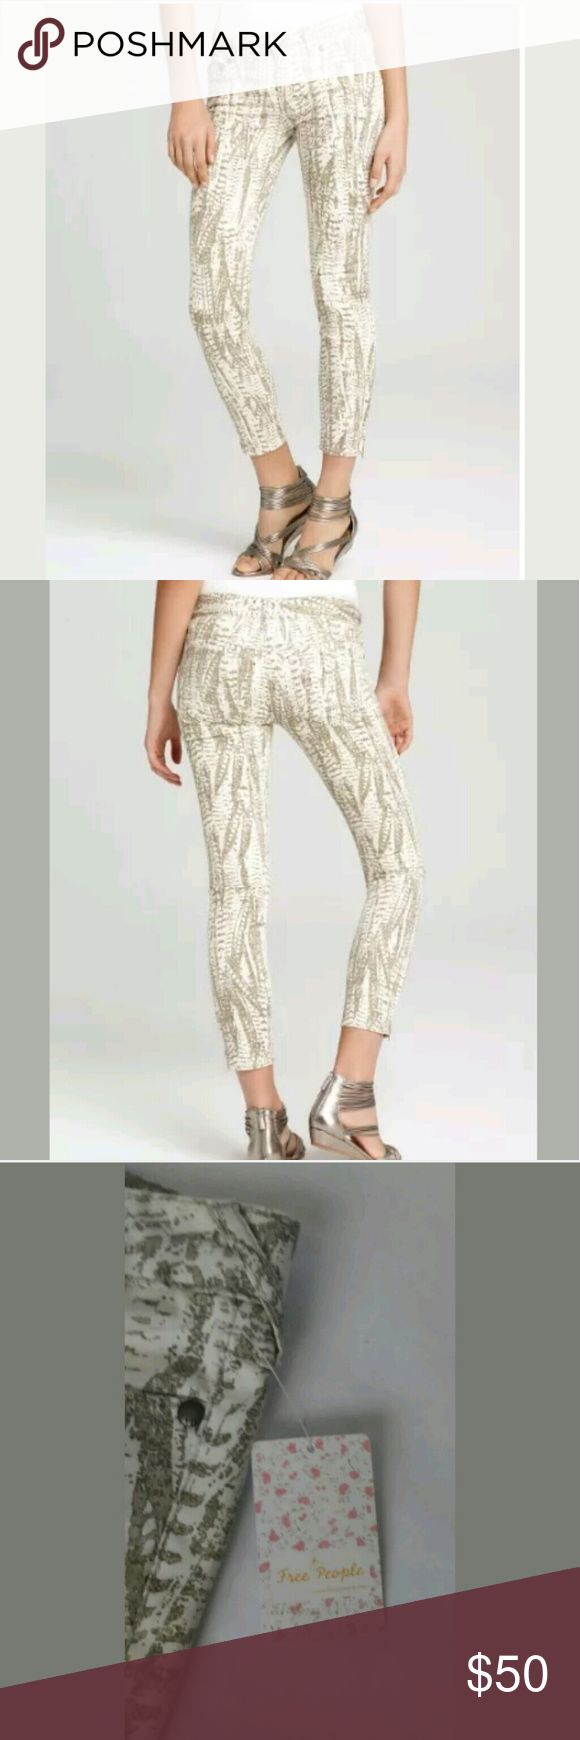 "NWT FREE PEOPLE Ankle Crop Printed Skinny Jeans Cream/Tan Denim Cropped Ankle   (ORIGINAL RETAIL was $88)  MEASUREMENTS and STYLE:  Size: Women's Size 29 Inseam: 26in. Waist (lying flat): 16in. Hip (lying flat) measured from bottom of zipper: 18in. Leg opening (lying flat): 5""  Color: Denim Cream/Tan  Print: Mixed/Feather-look (See Images)  Zipper on bottom of each pant leg  Model #: F790P057  New with original tags, never worn-BRAND NEW! Free People Jeans Ankle & Cropped"